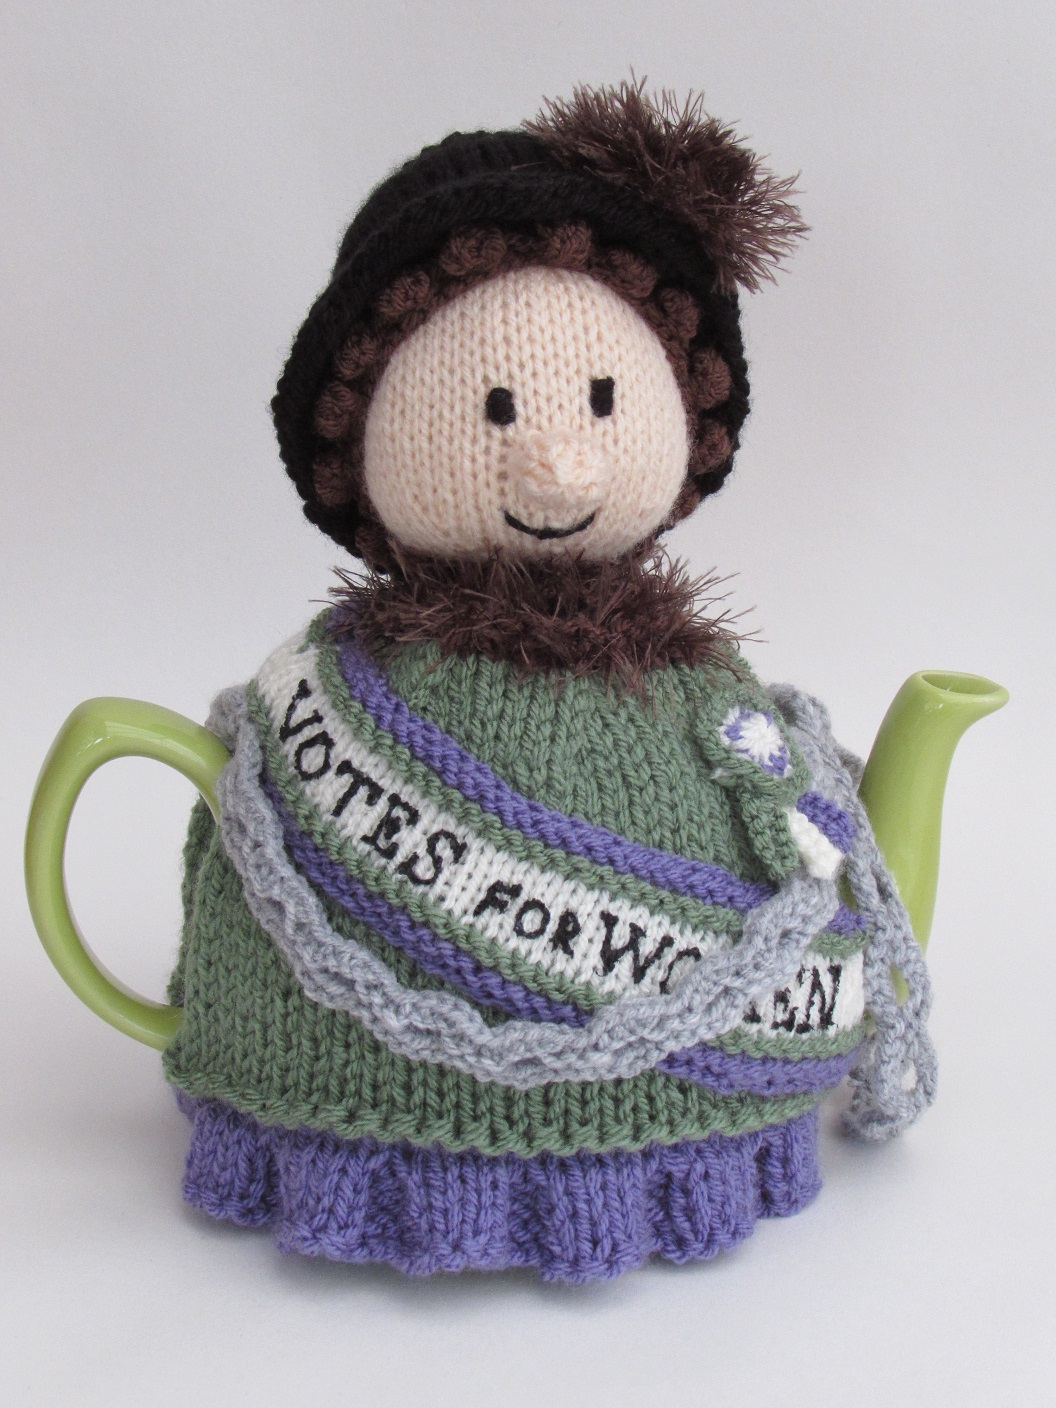 Suffragette tea cosy knitting pattern for Tea cosy template